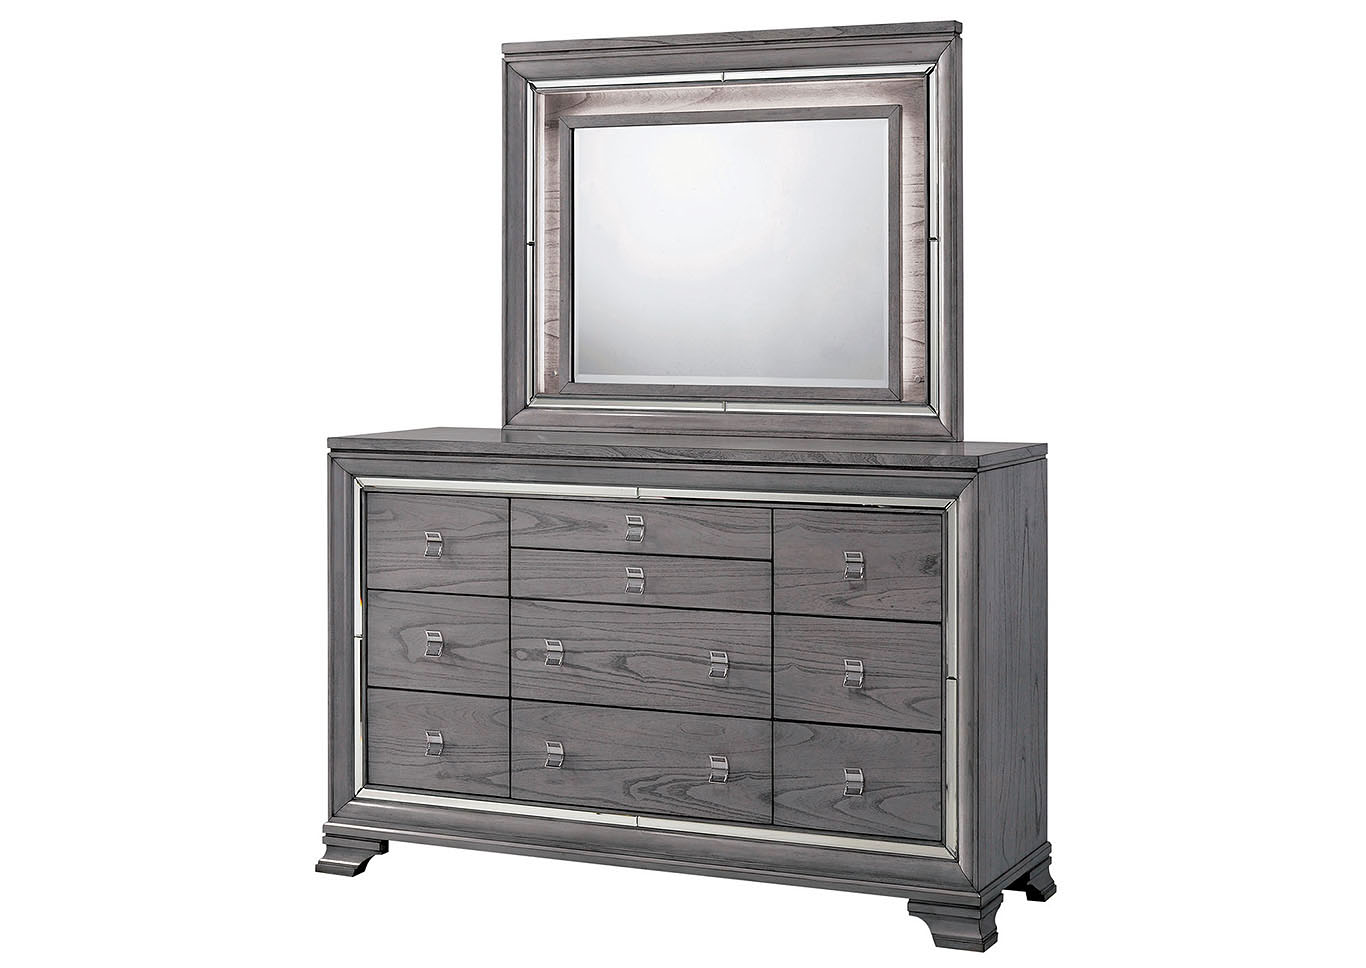 Alanis Light Gray Mirror Trim Dresser And Mirror Best Buy Furniture And Mattress